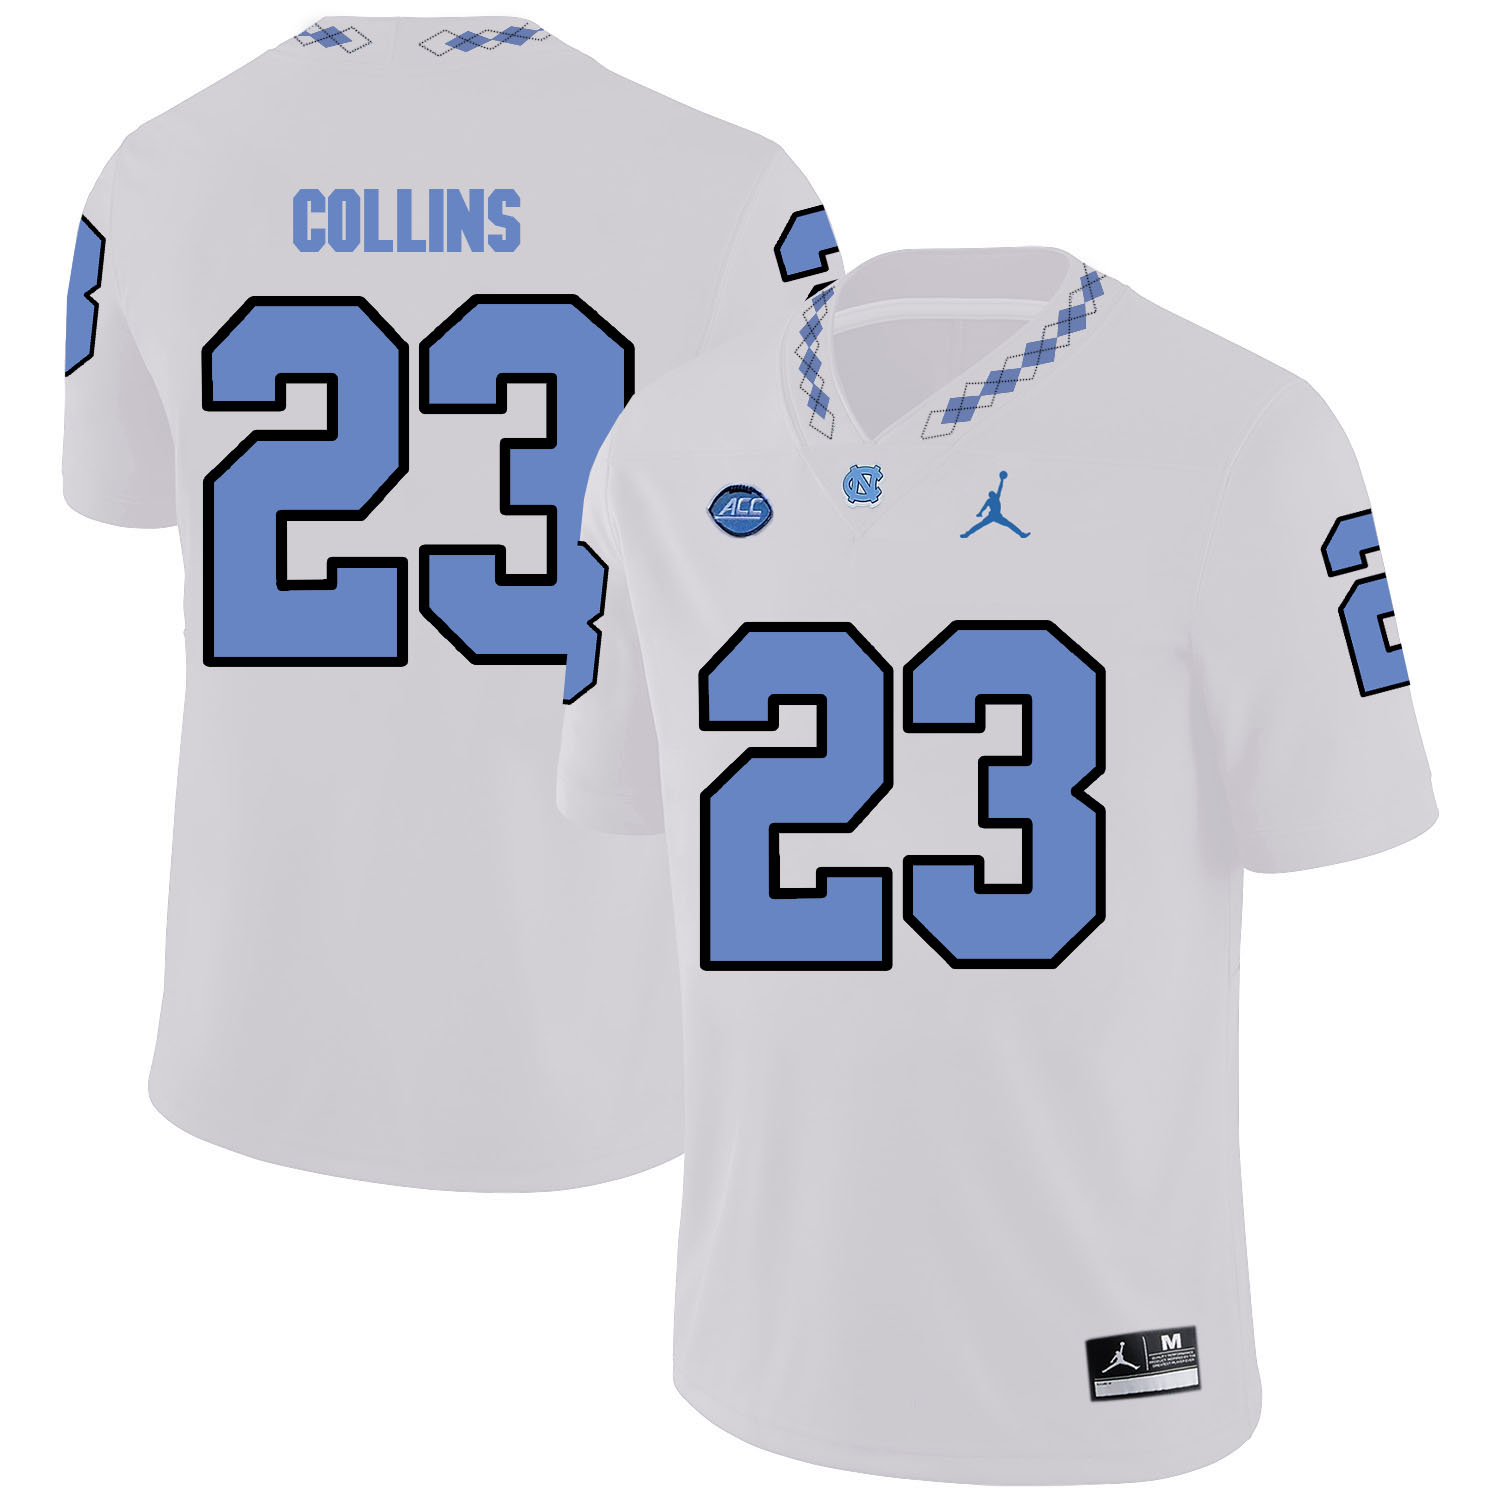 North Carolina Tar Heels 23 David Collins White College Football Jersey